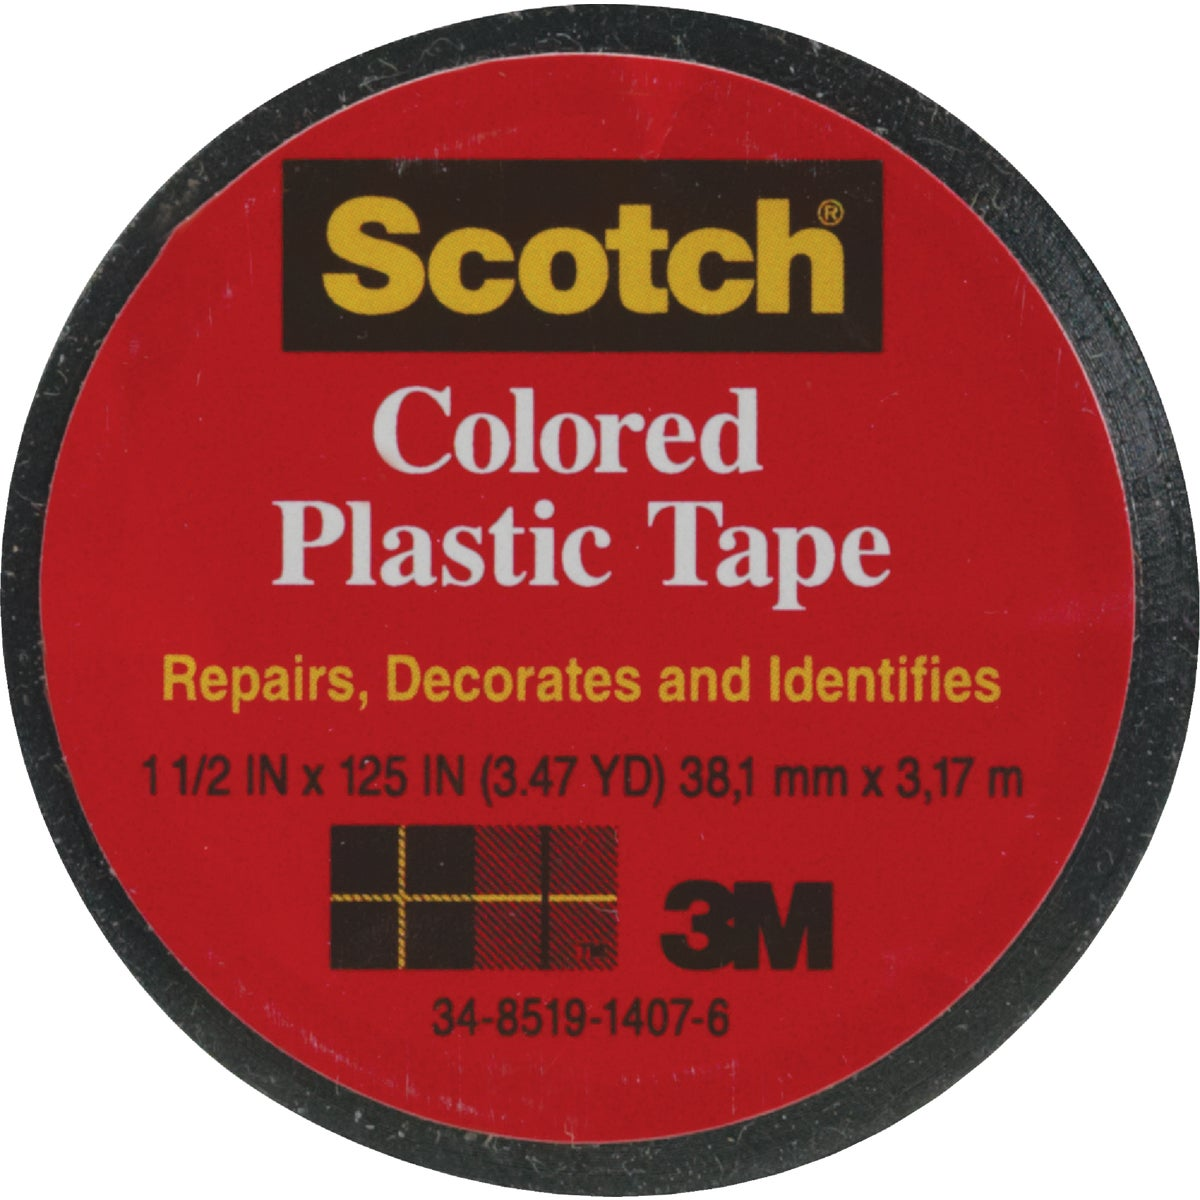 "SCOTCH 1-1/2""BLK PL TAPE - 191 by 3m Co"